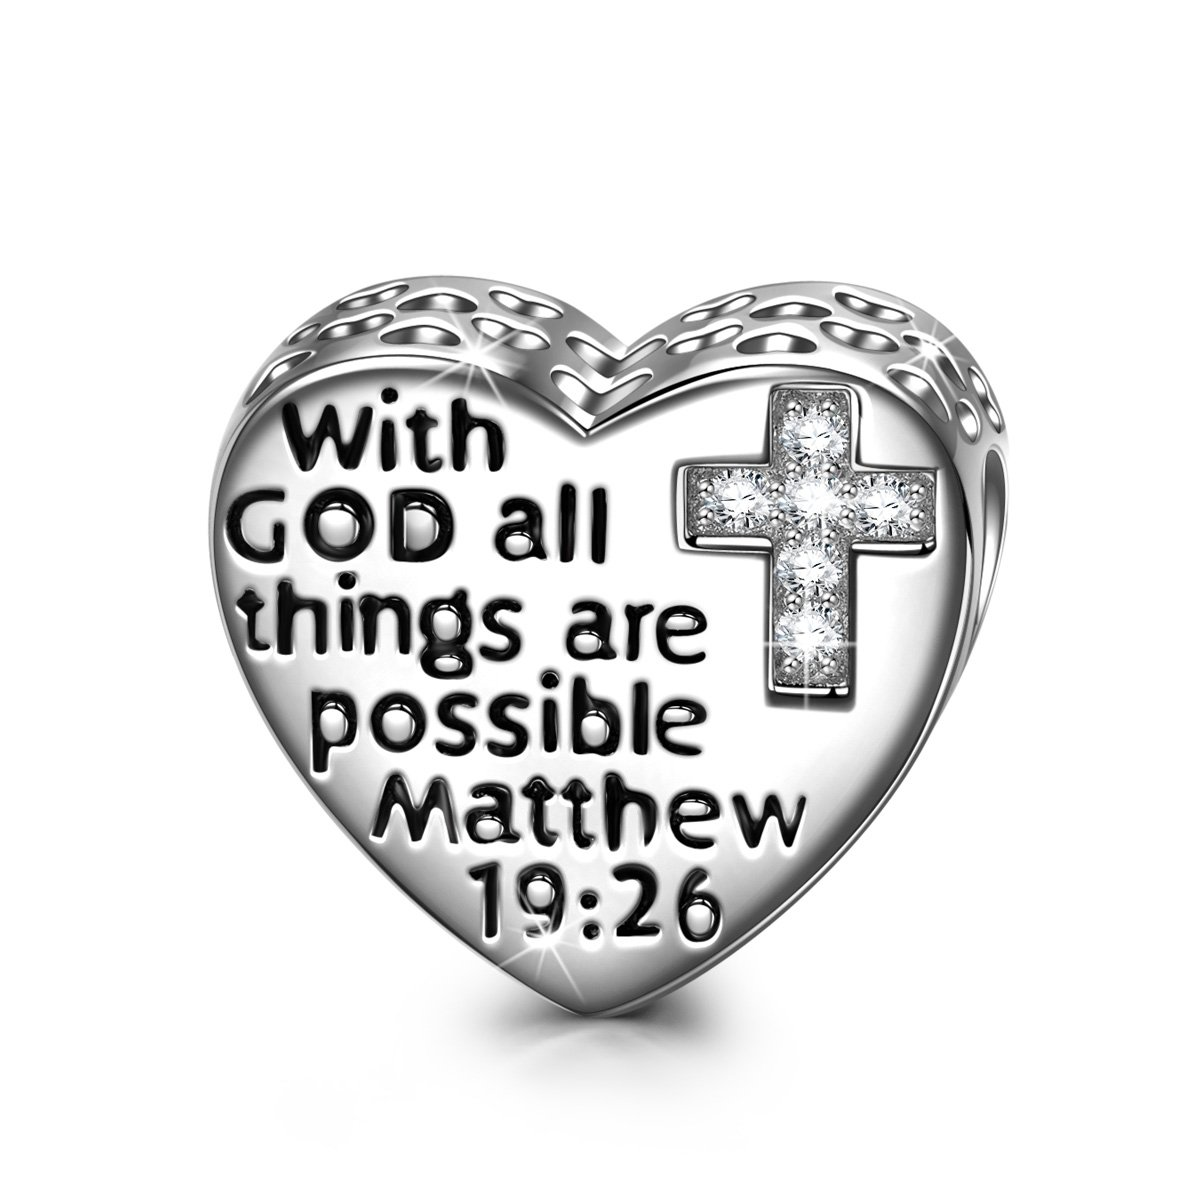 NINAQUEEN 925 Sterling Silver Charms with 5A Cubic Zirconias Engraved with With GOD All Things Are Possible Religious Cross Charm Prayer Heart Shape Bead Fit Pandöra Bracelets, Gifts for Teen Girls